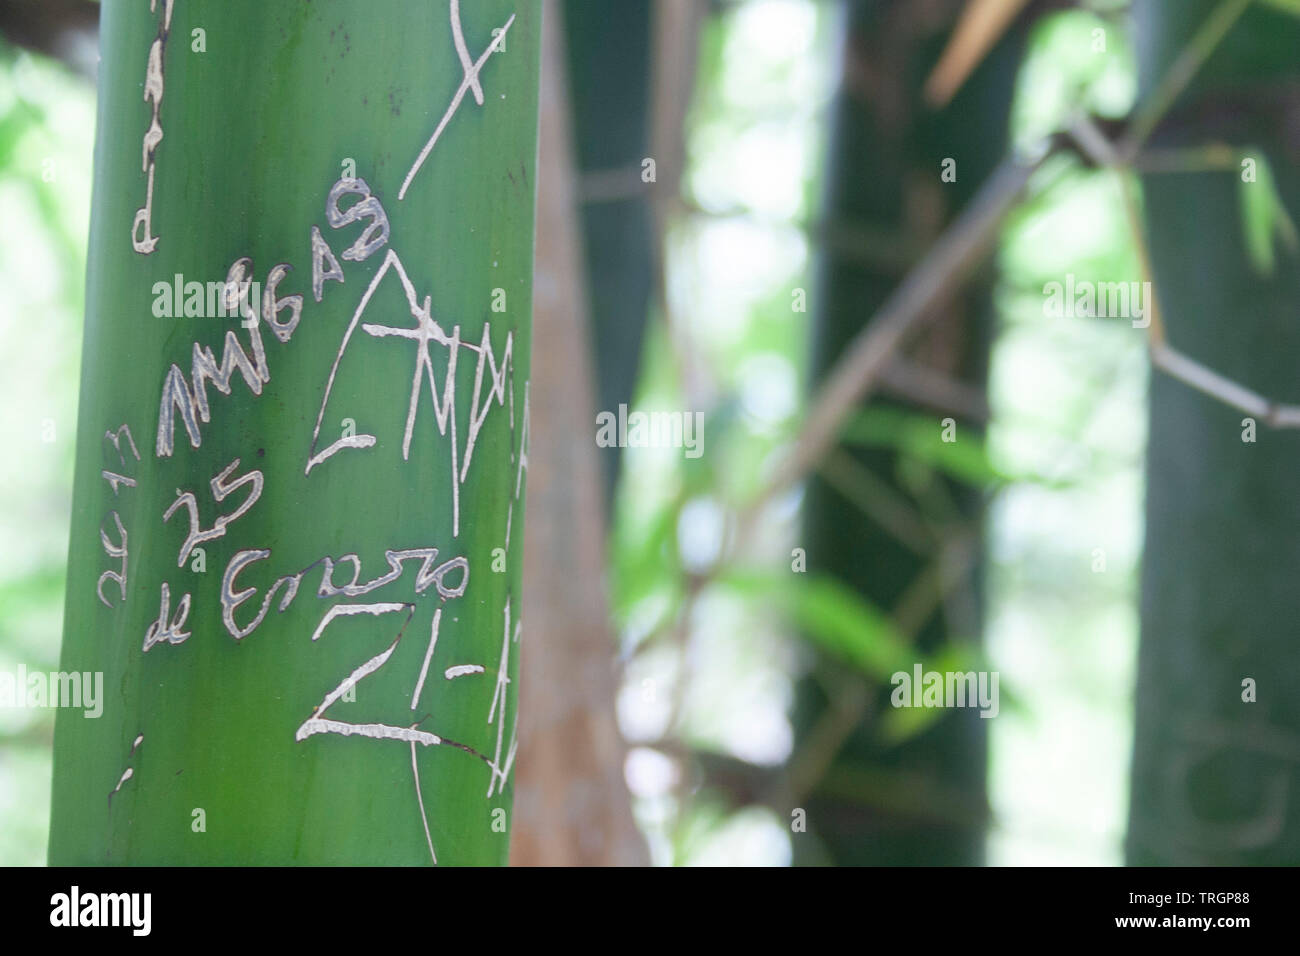 Detail of bamboo tree with some carved writings on its trunk. - Stock Image